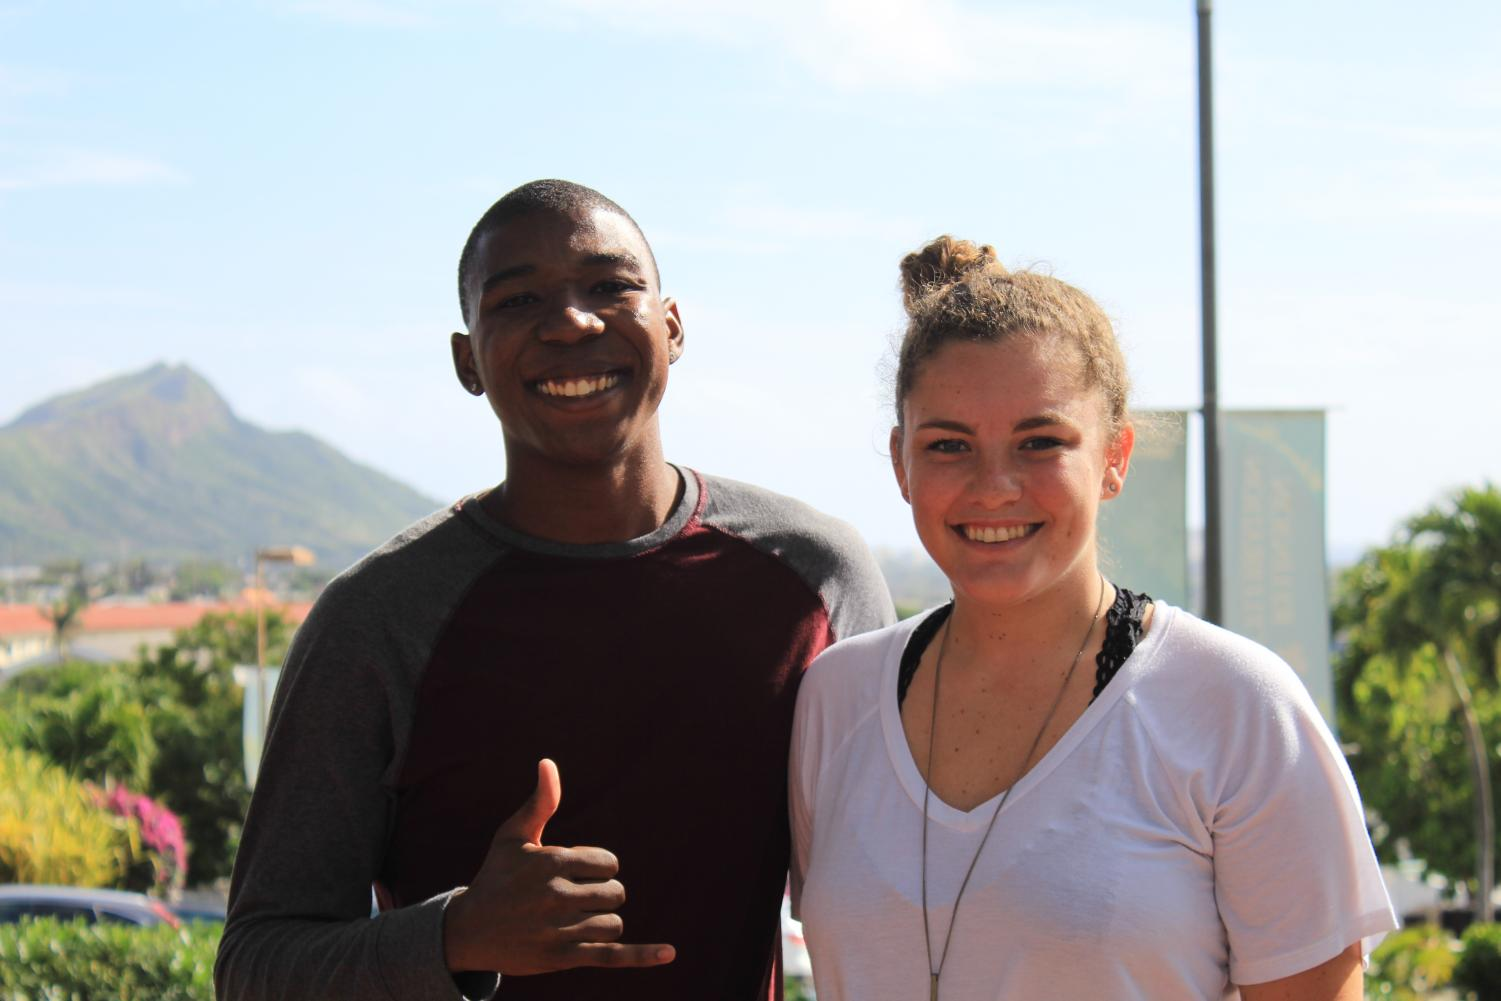 Antonio Bonnetty was voted as Chaminade's student body president with Claire Riggan as his running mate.